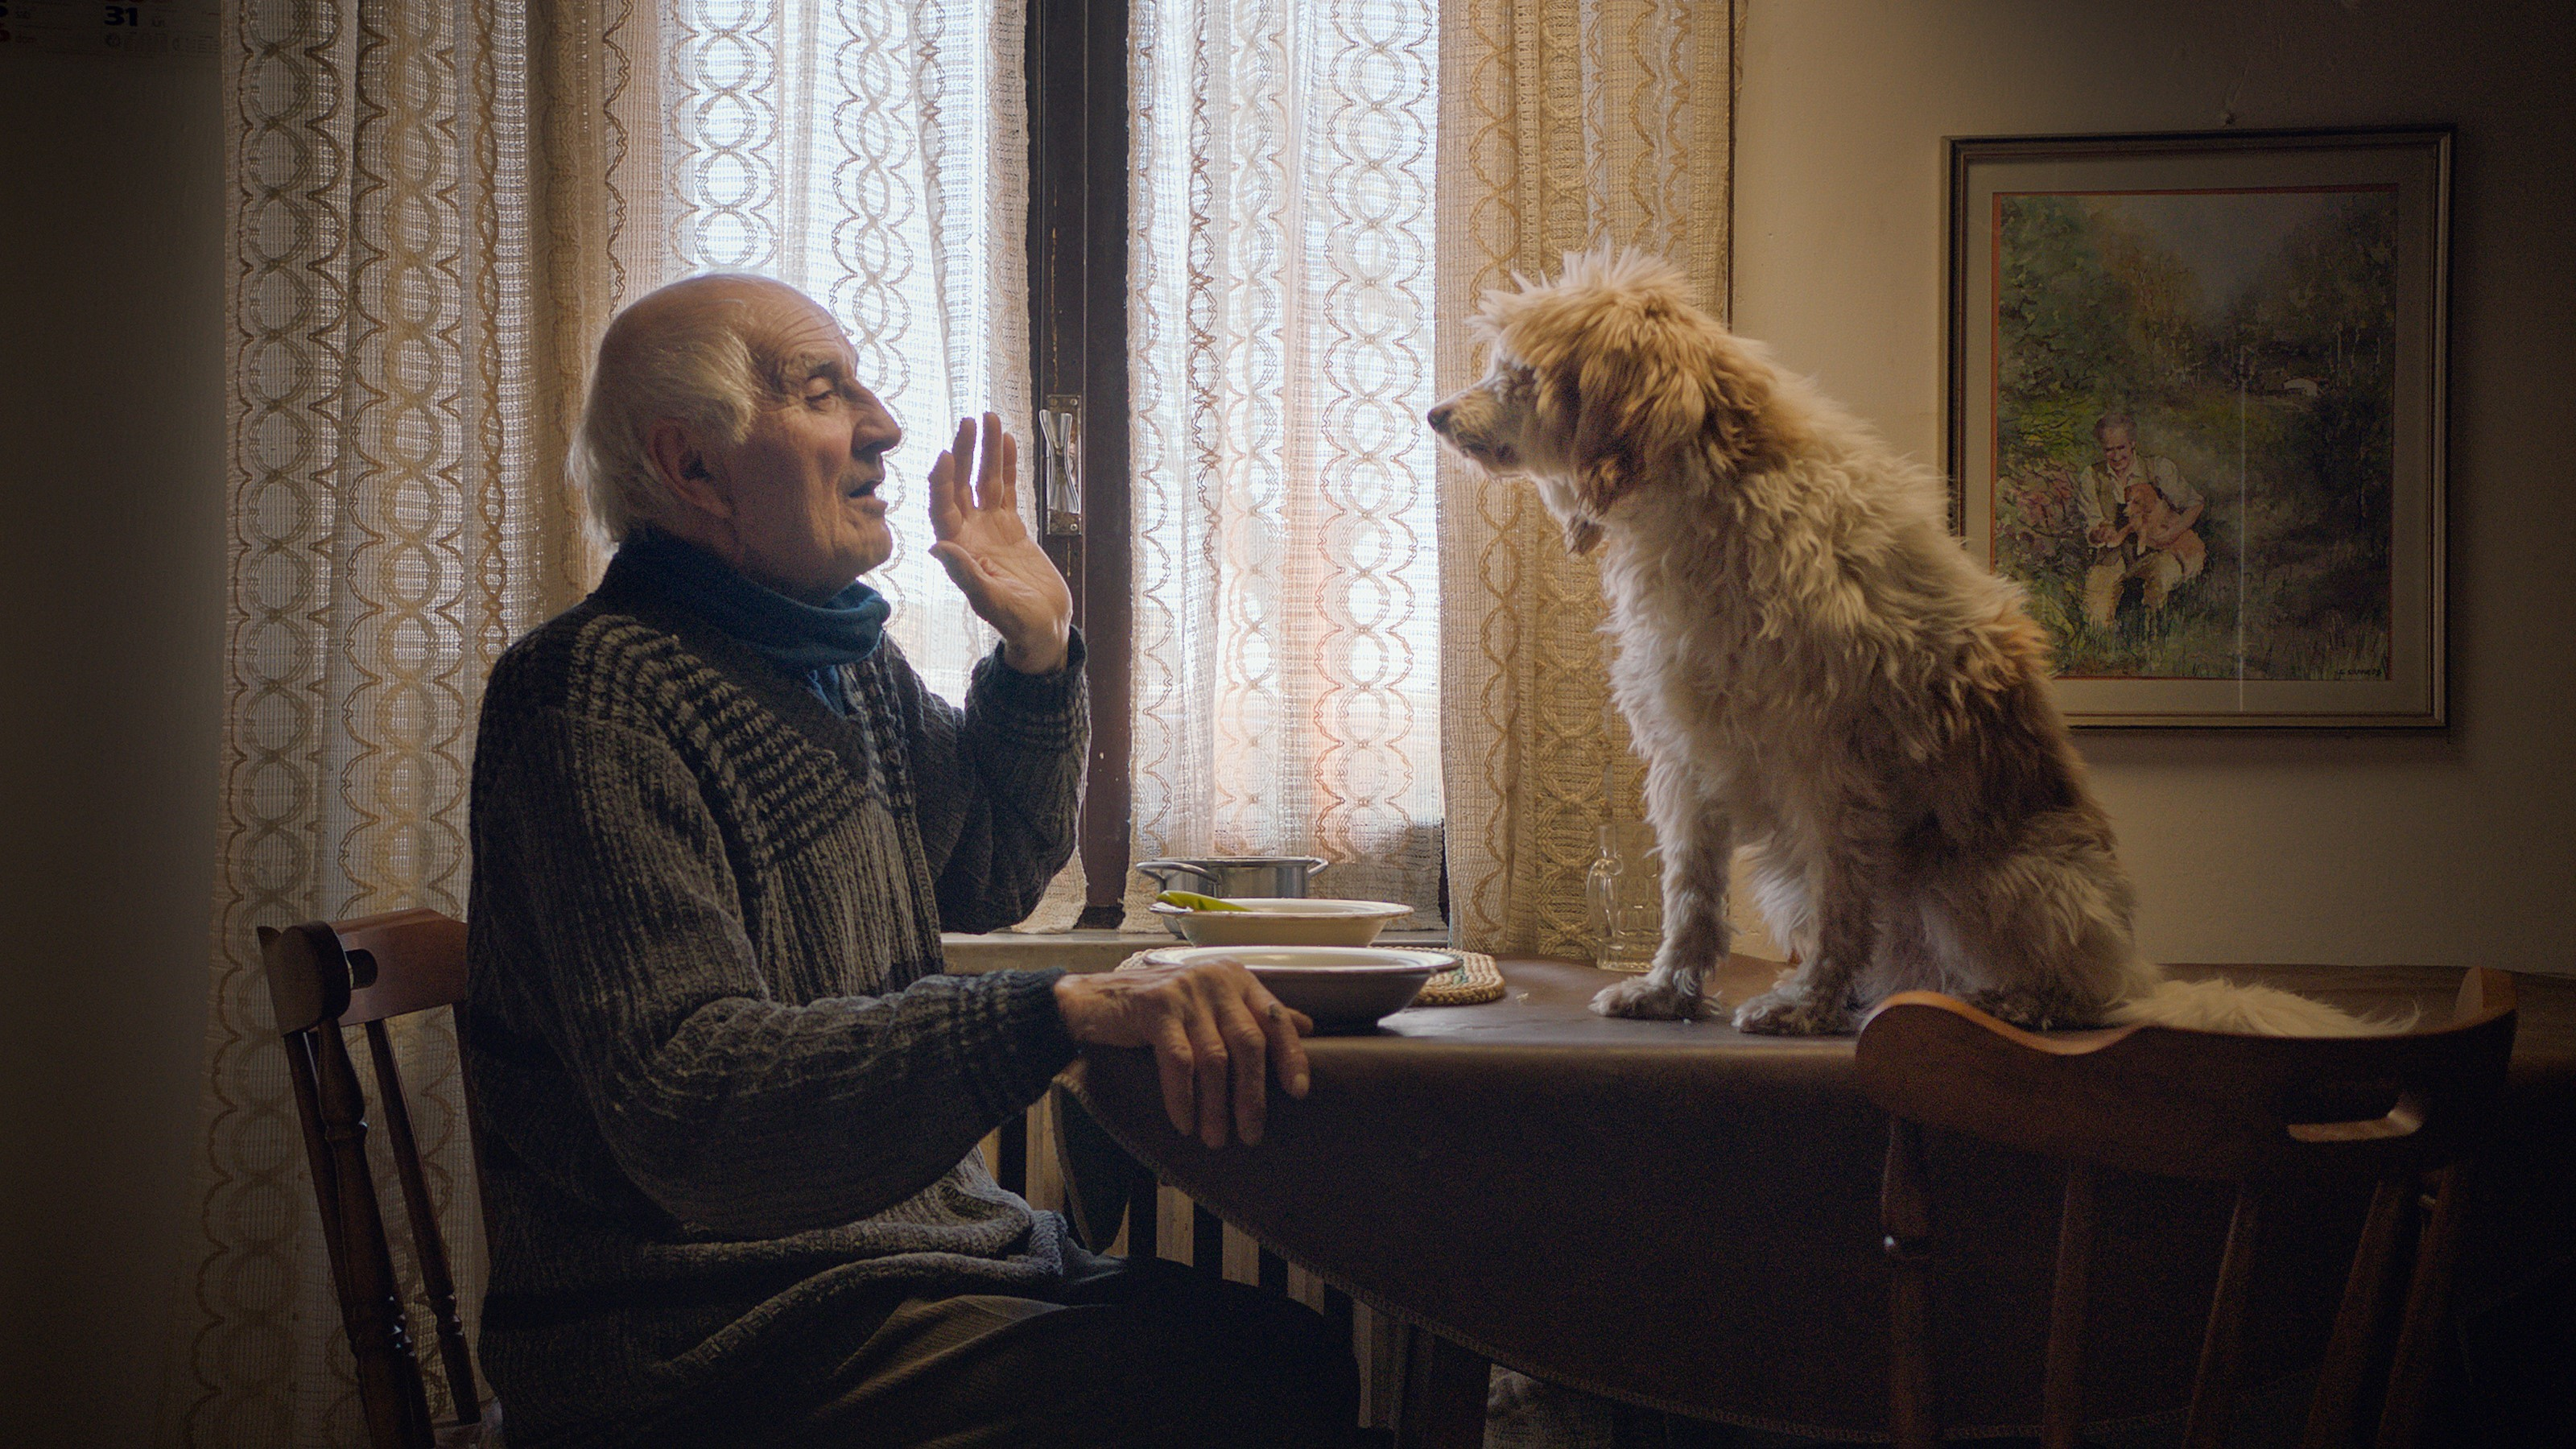 Still from the film 'The Truffle Hunters' showing a man speaking to his dog.